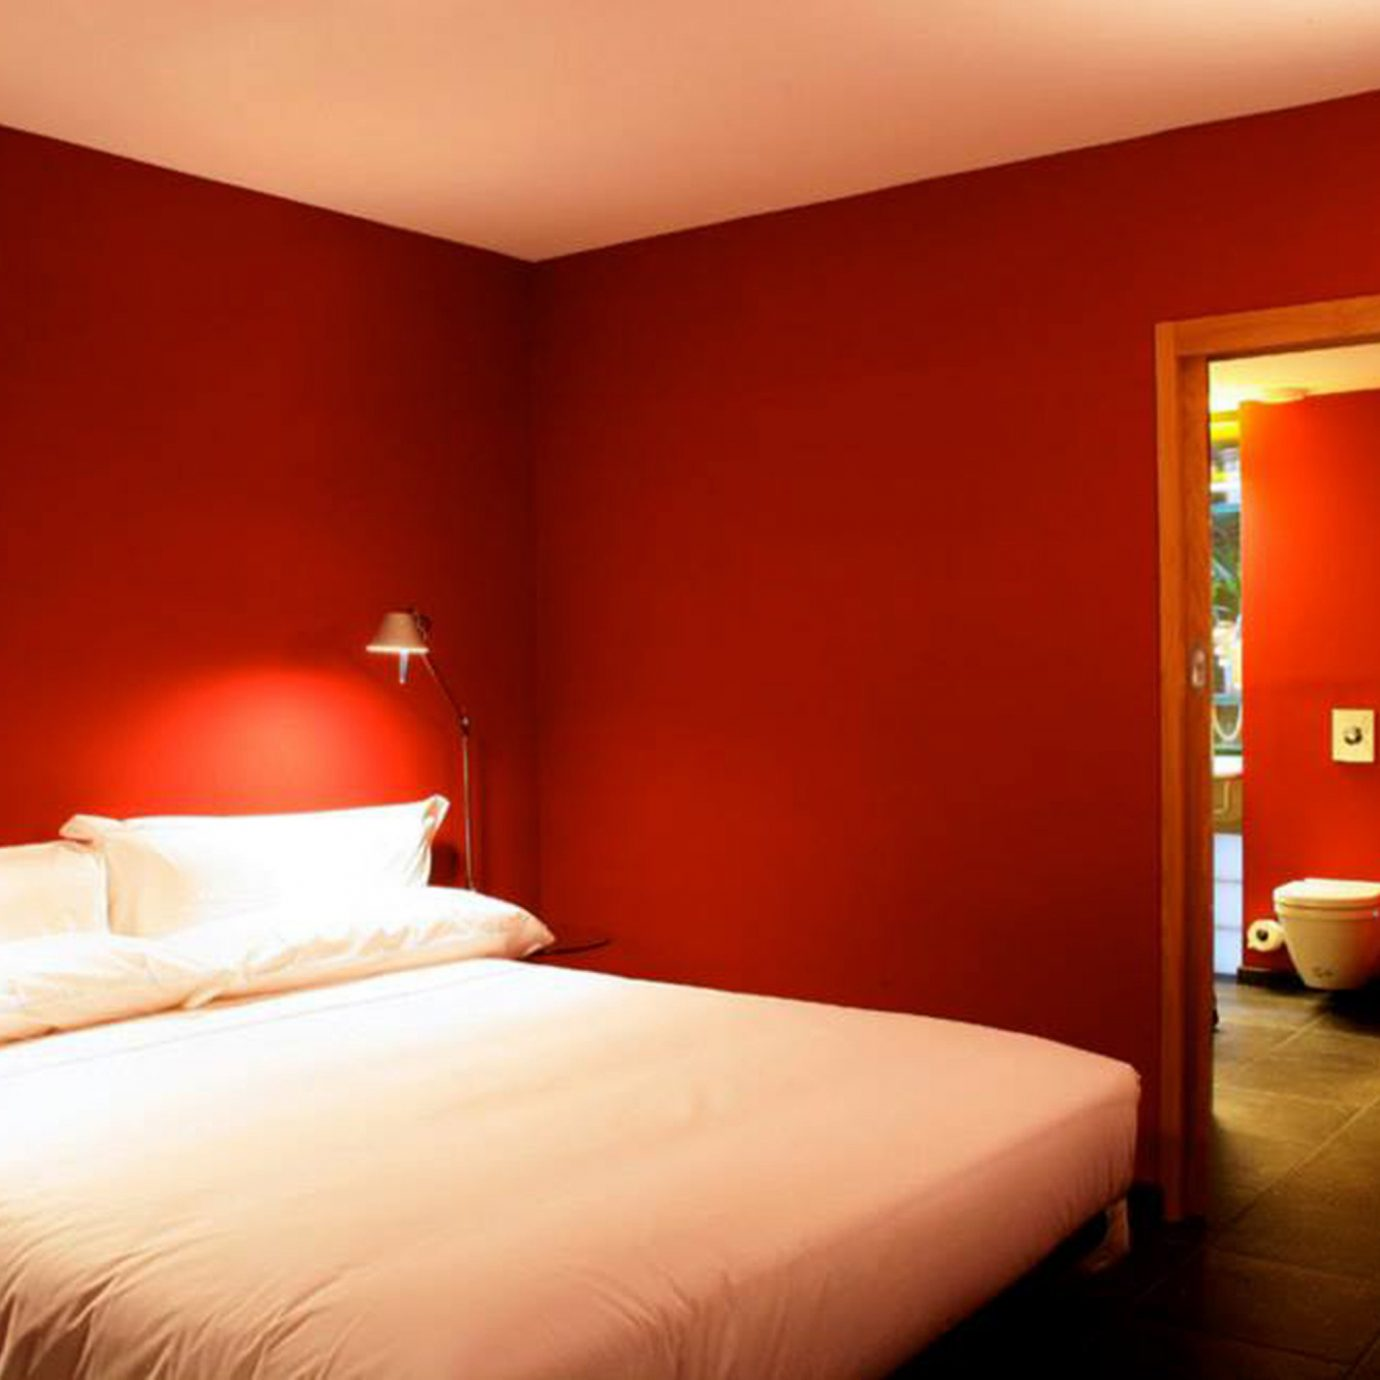 Bedroom Suite red orange